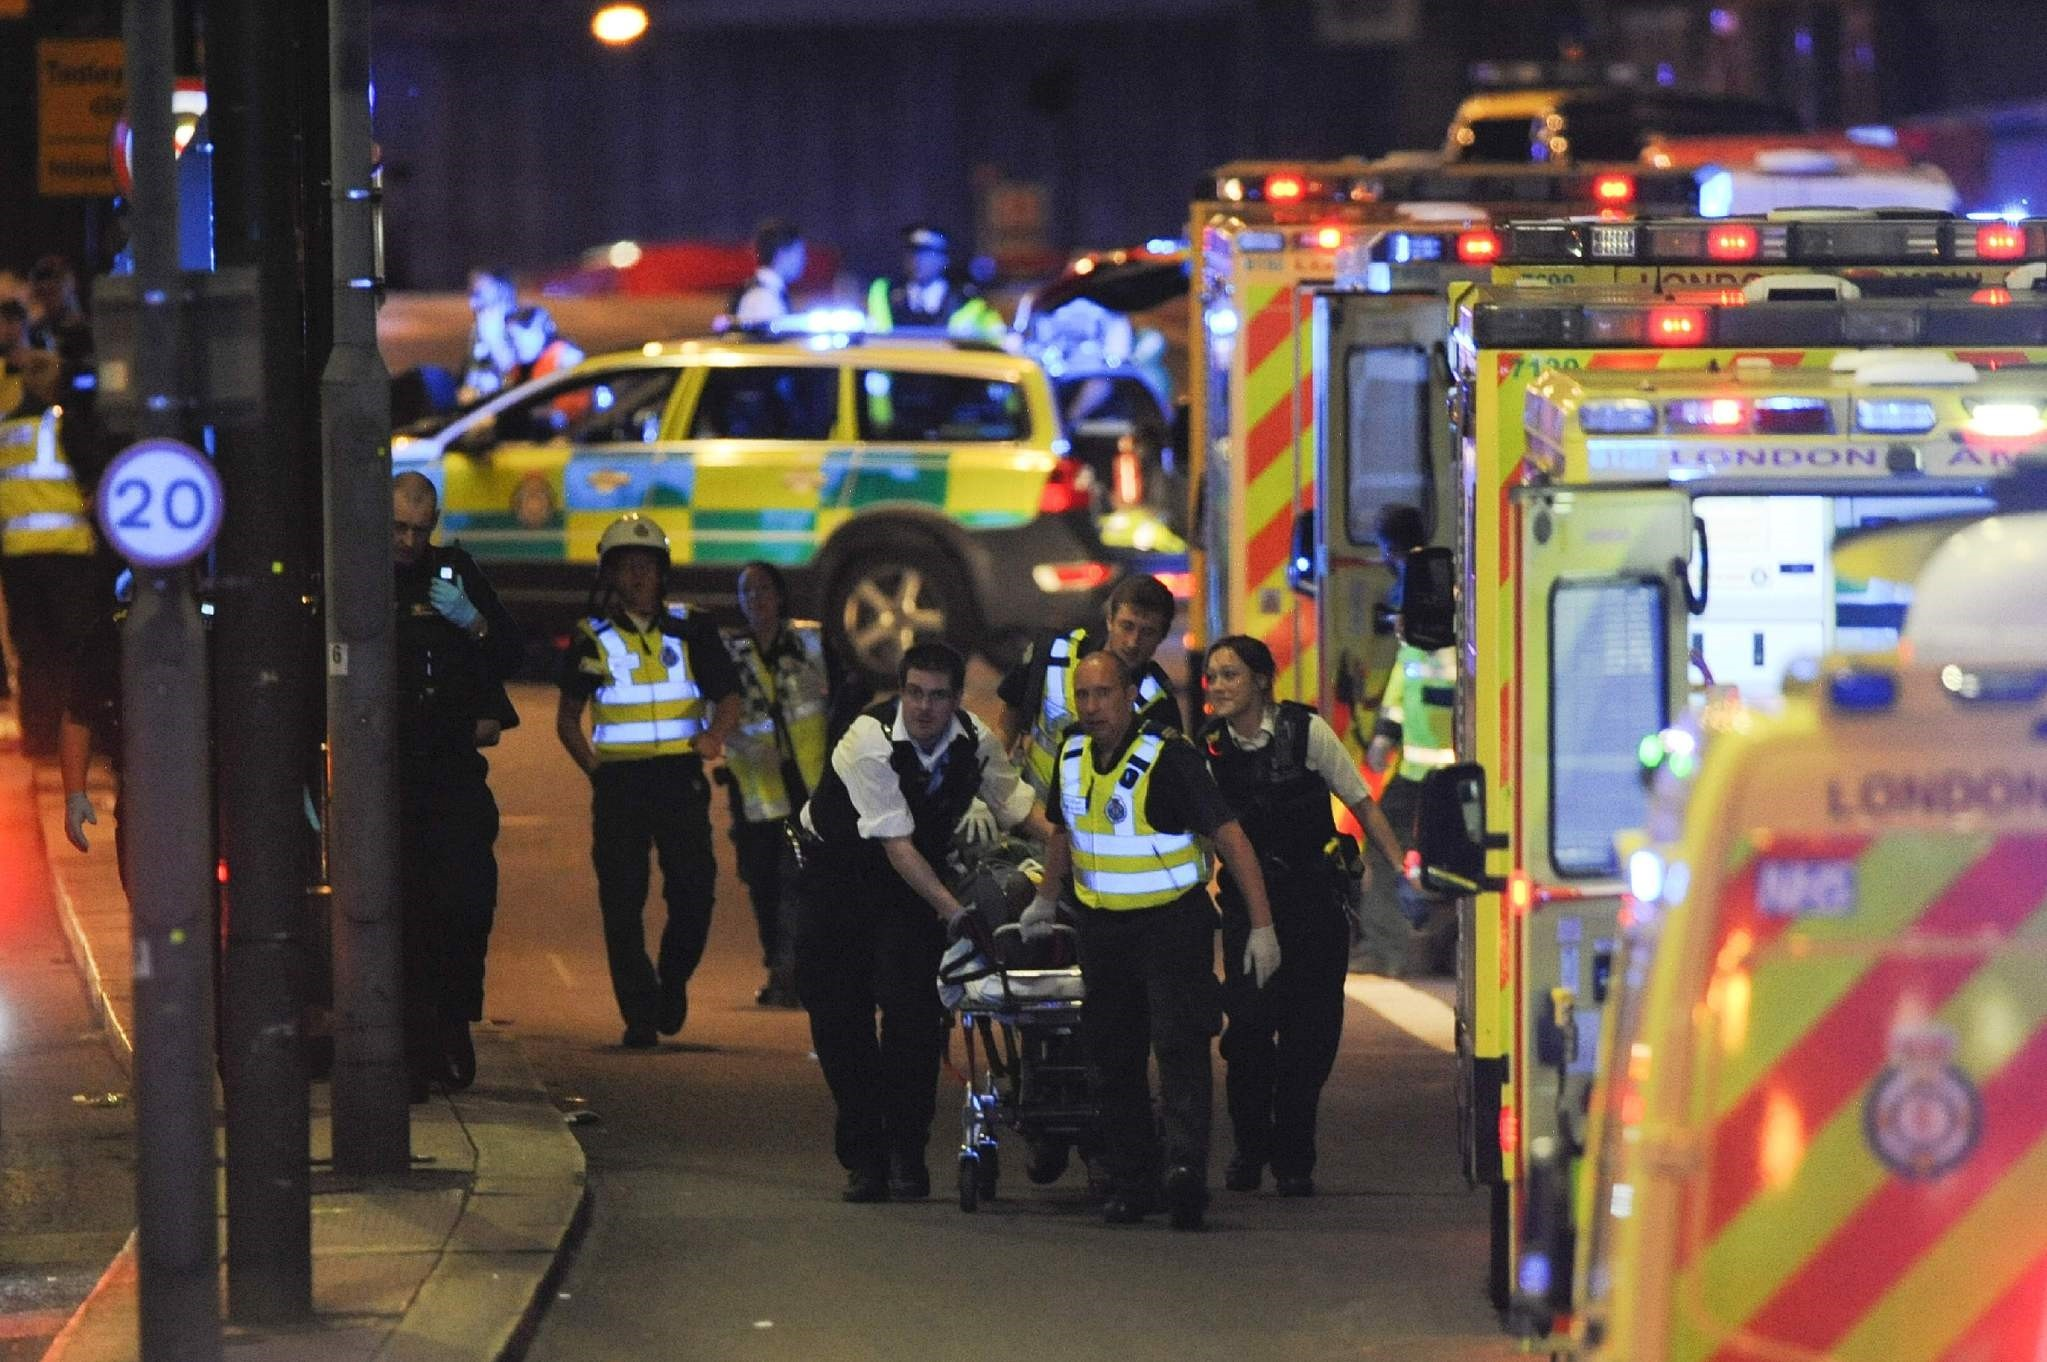 Police officers and members of the emergency services carrying a person injured in the terror attack on London Bridge on Saturday.